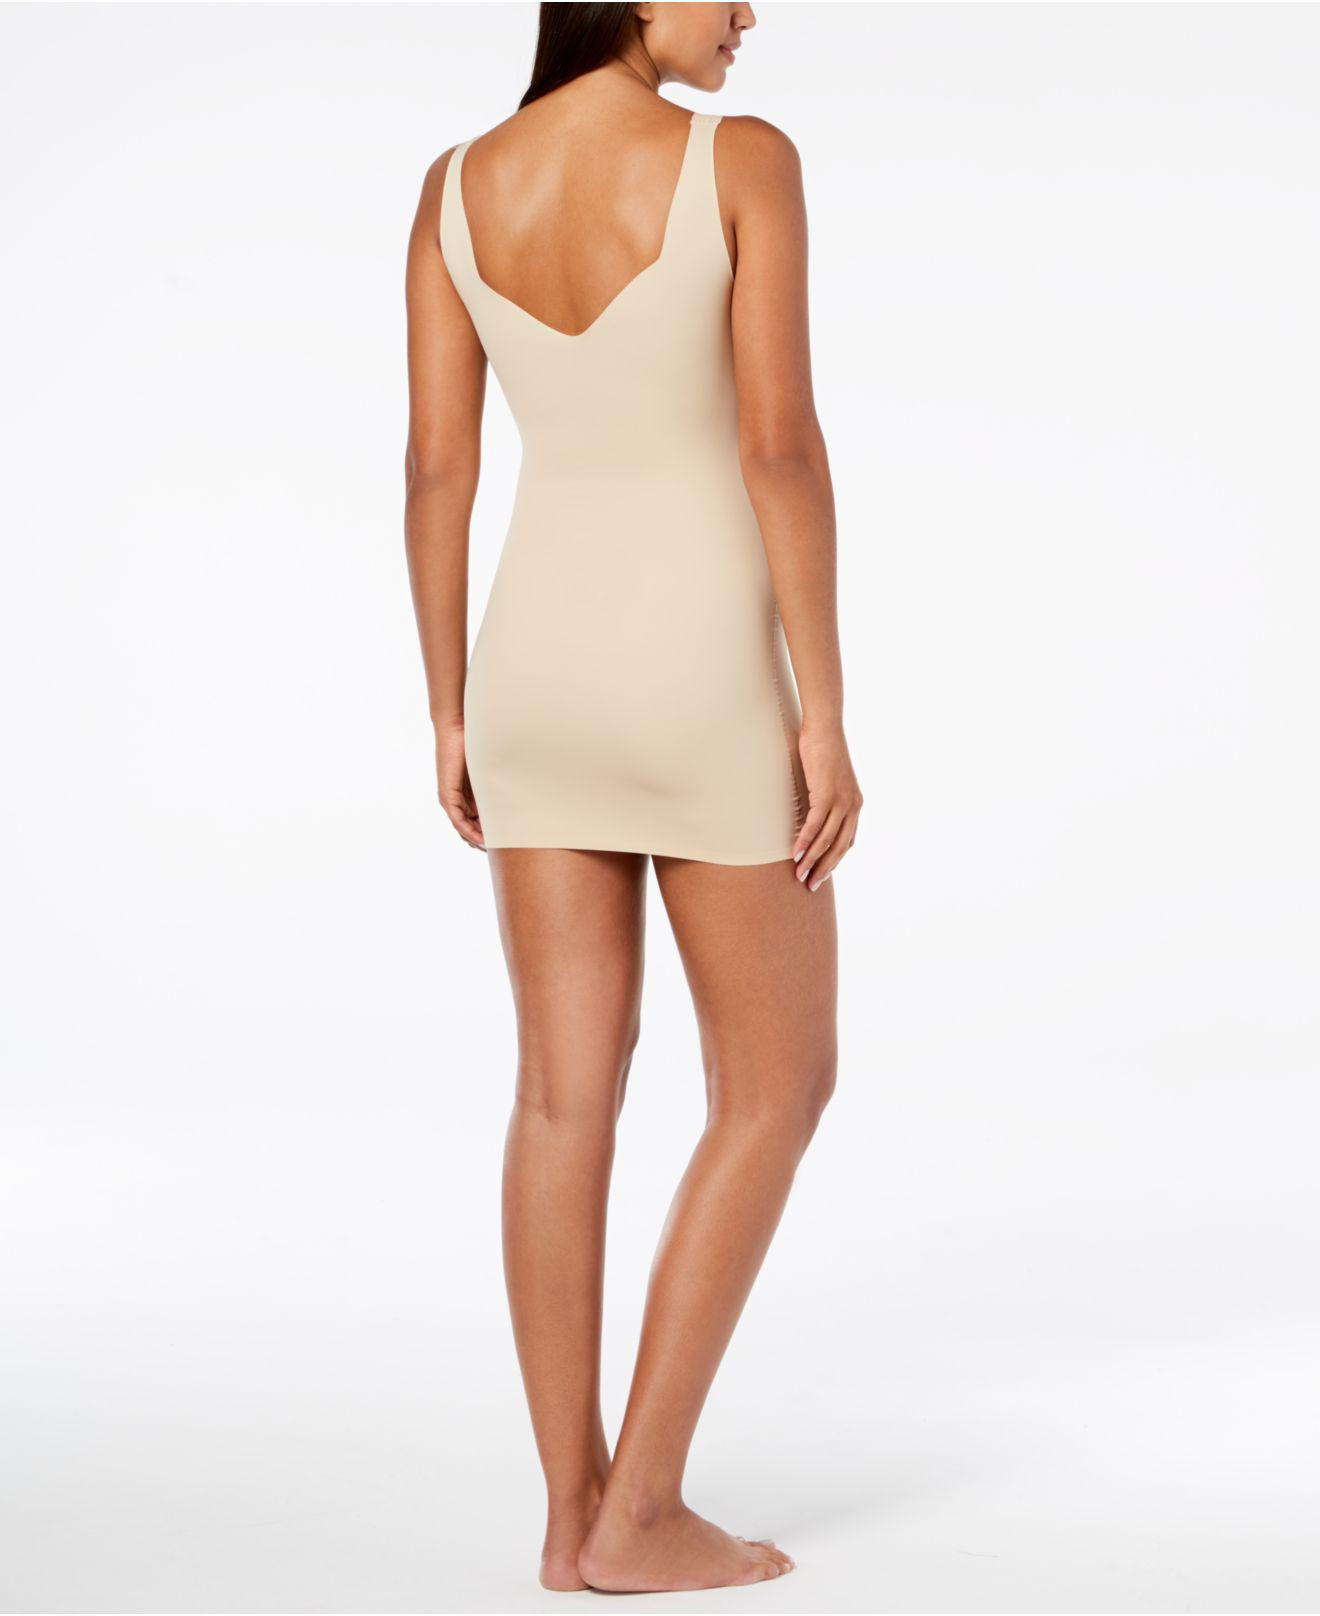 1eff72fa2fe63 Lyst - Wacoal Beyond Naked Slip We121009 in Natural - Save 25%